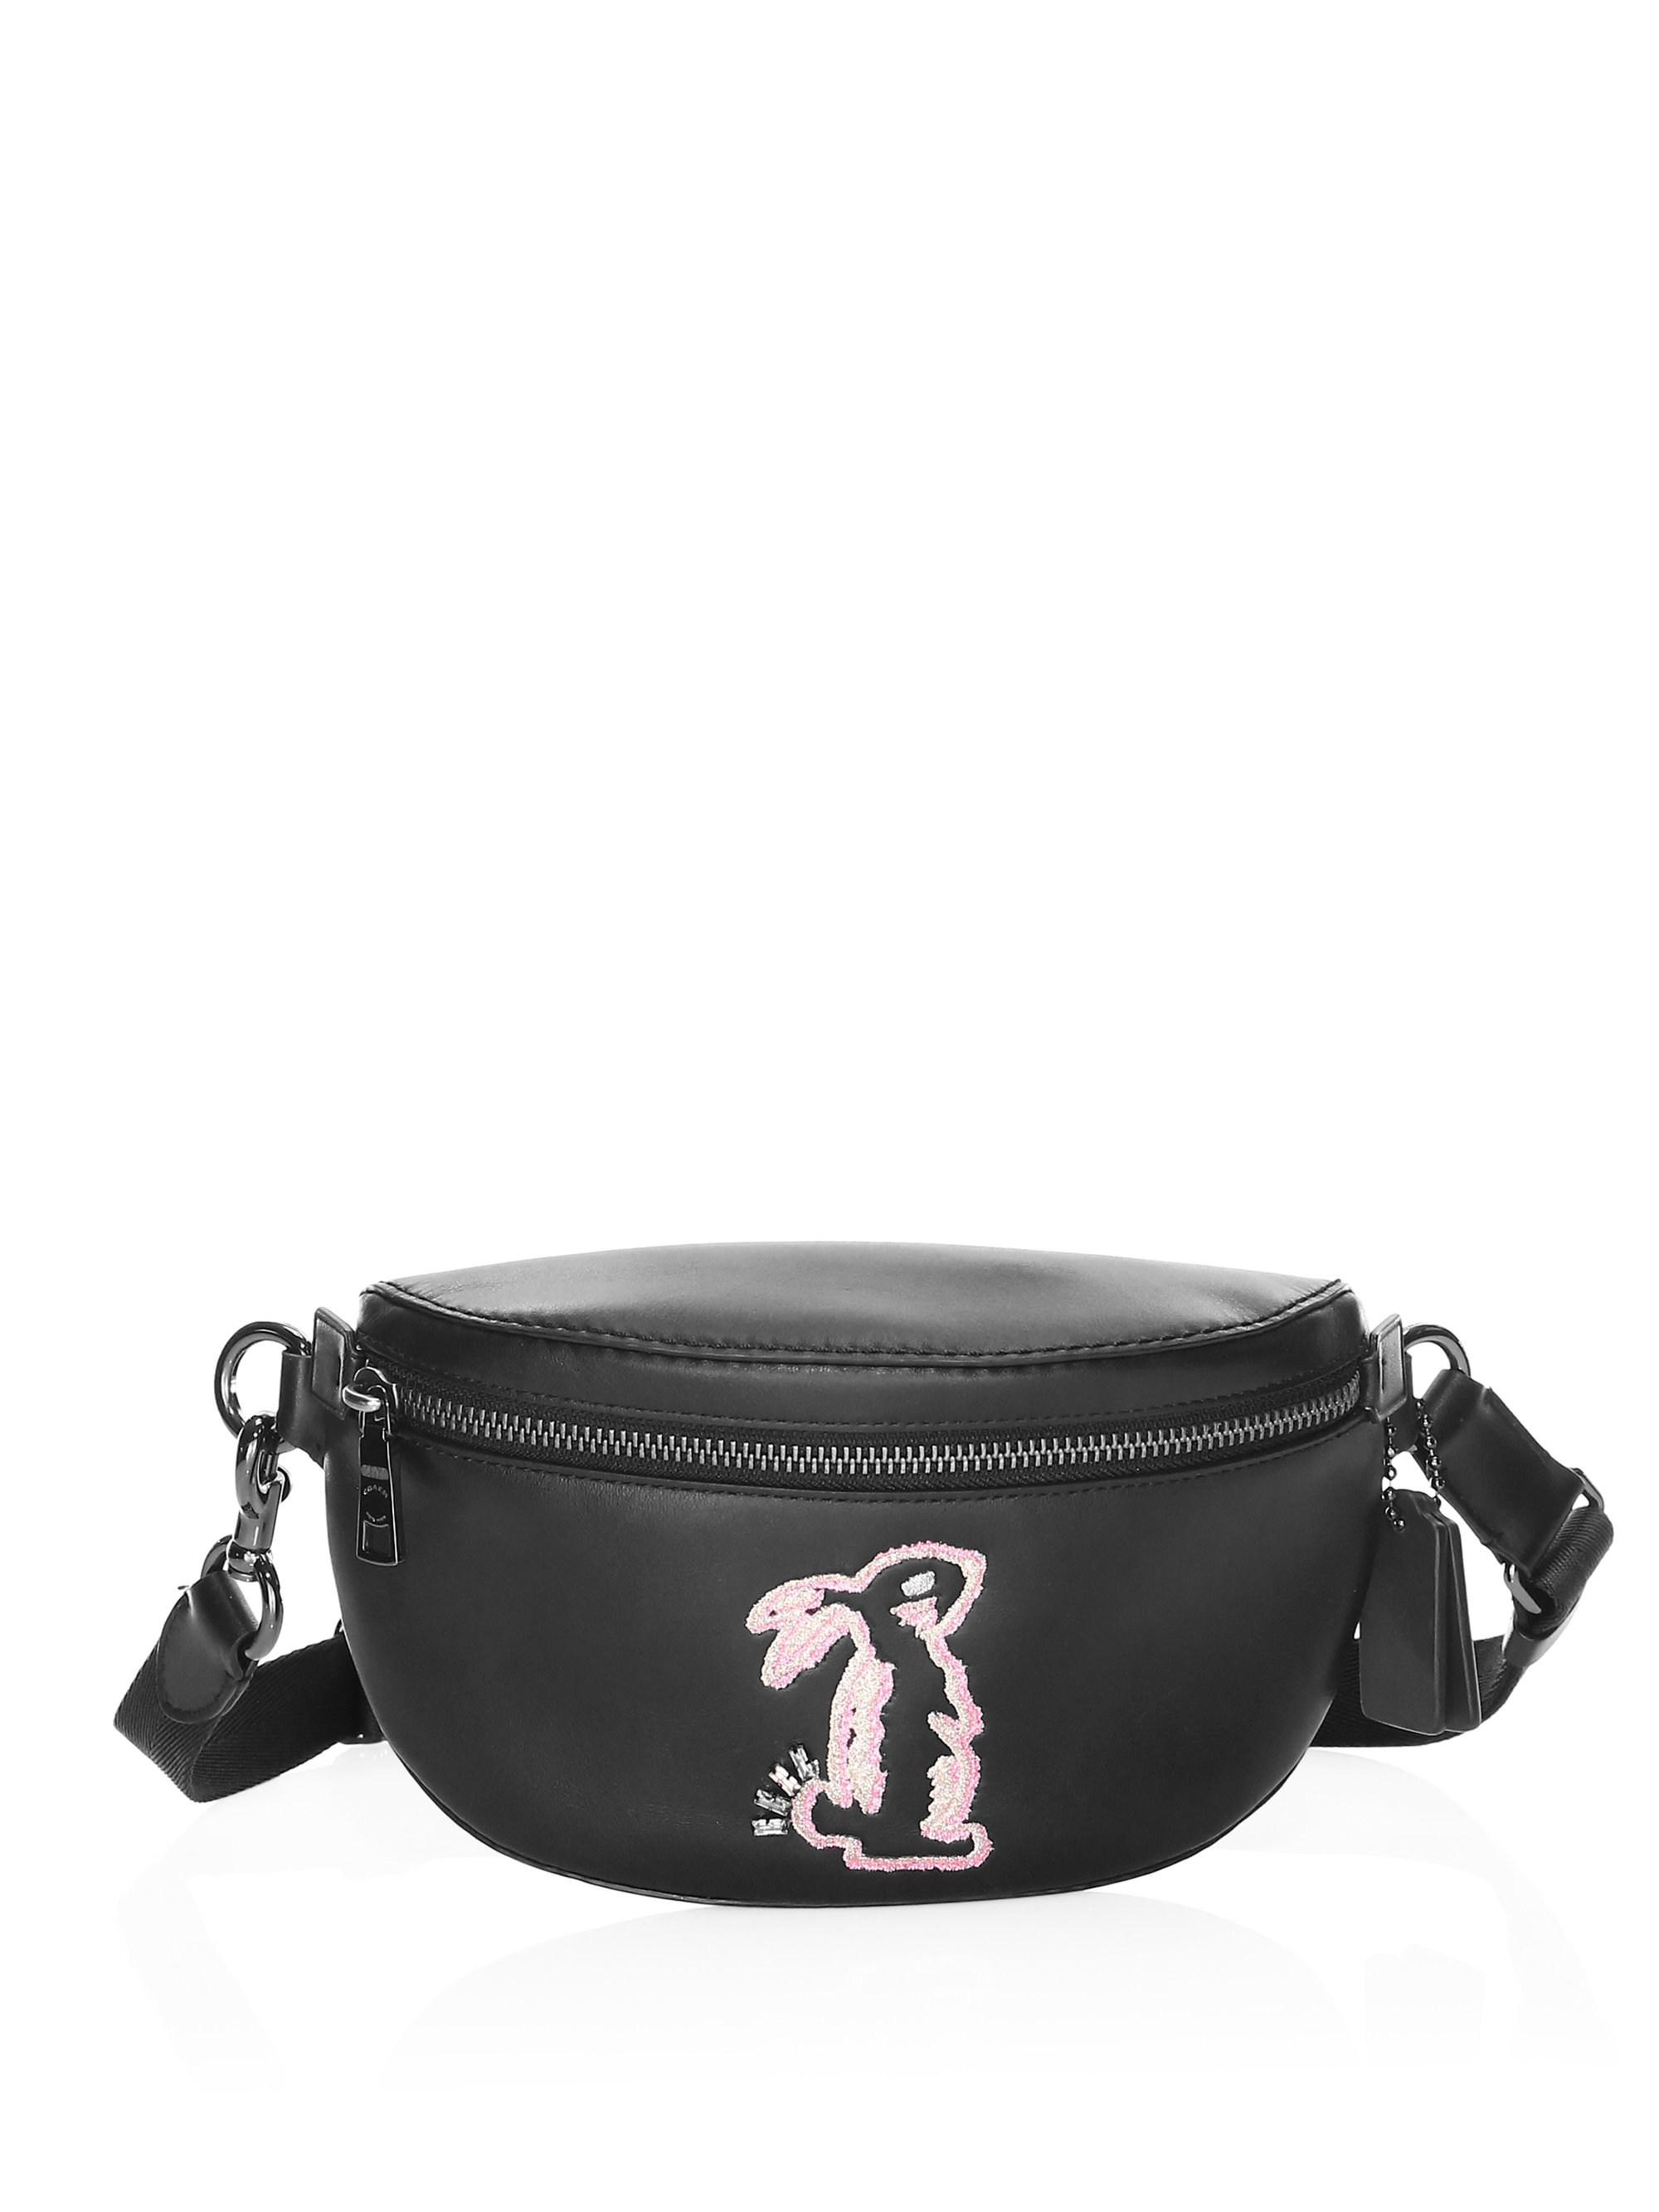 6a1ac05843e7f Lyst - COACH X Selena Gomez Bunny Belt Bag in Black